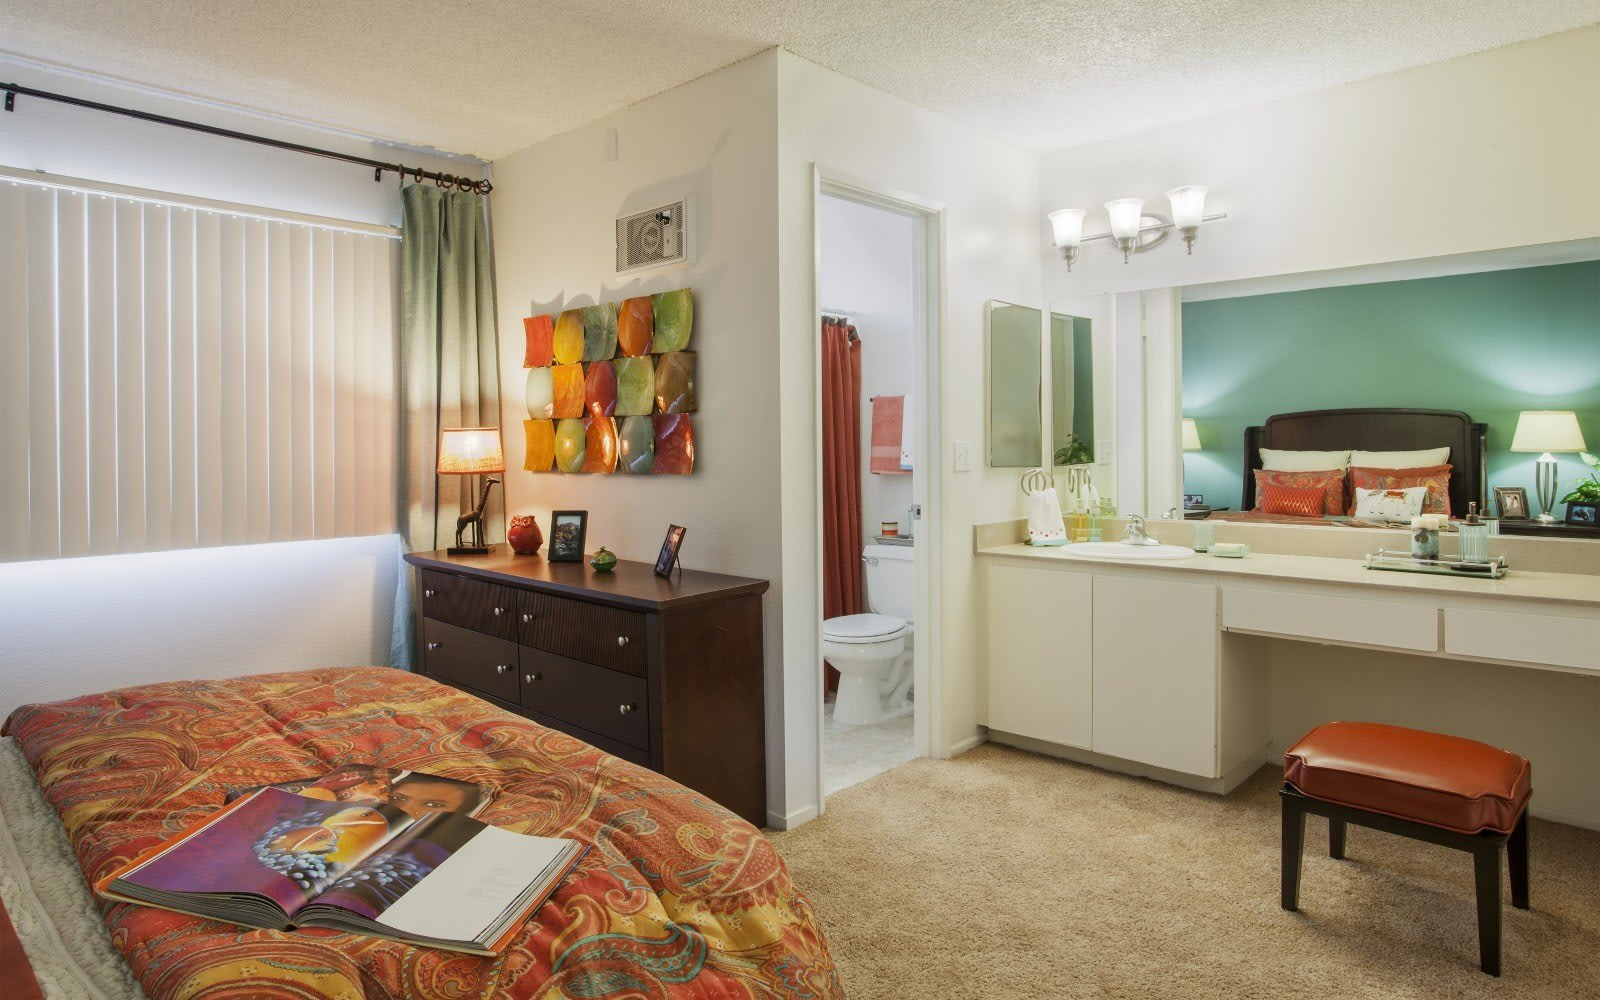 Bedroom at Pacific Oaks Apartments